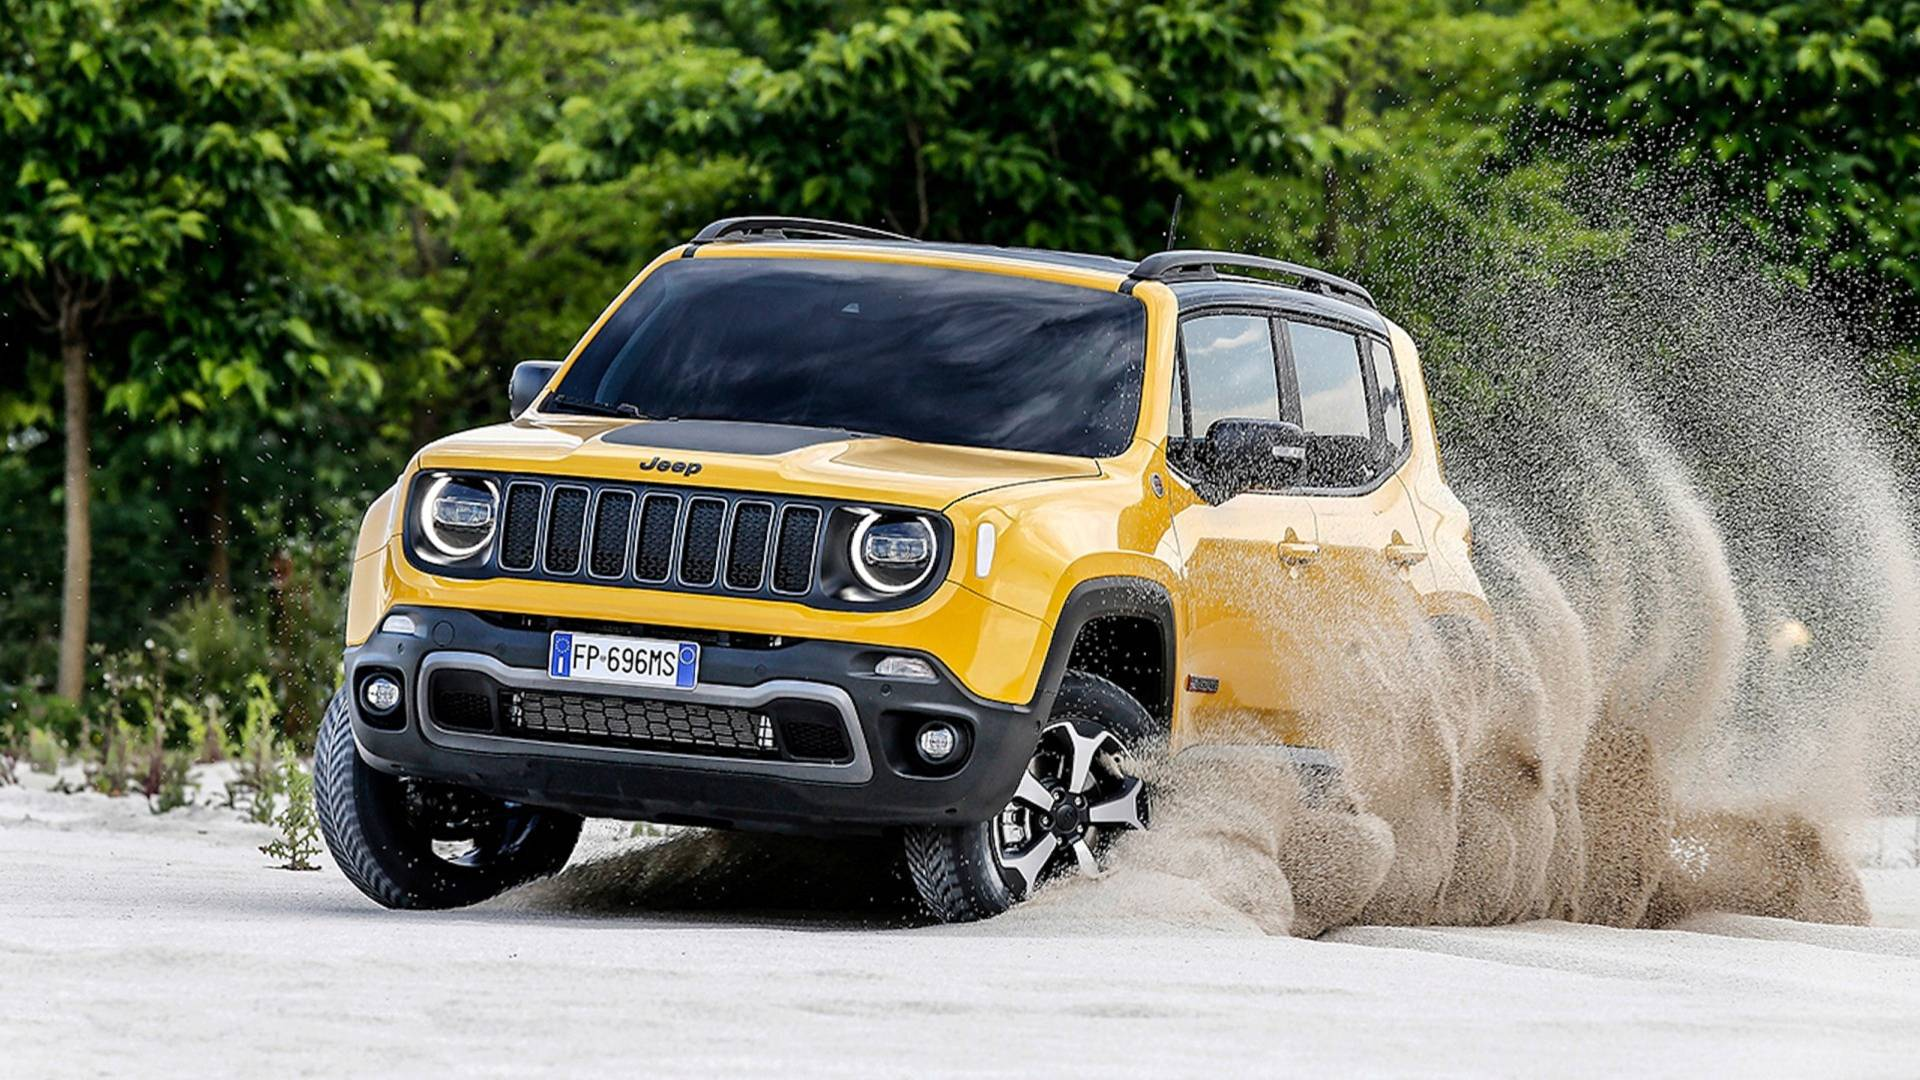 2019 Jeep Renegade Detailed In Full Including Trailhawk Trim 1920x1080